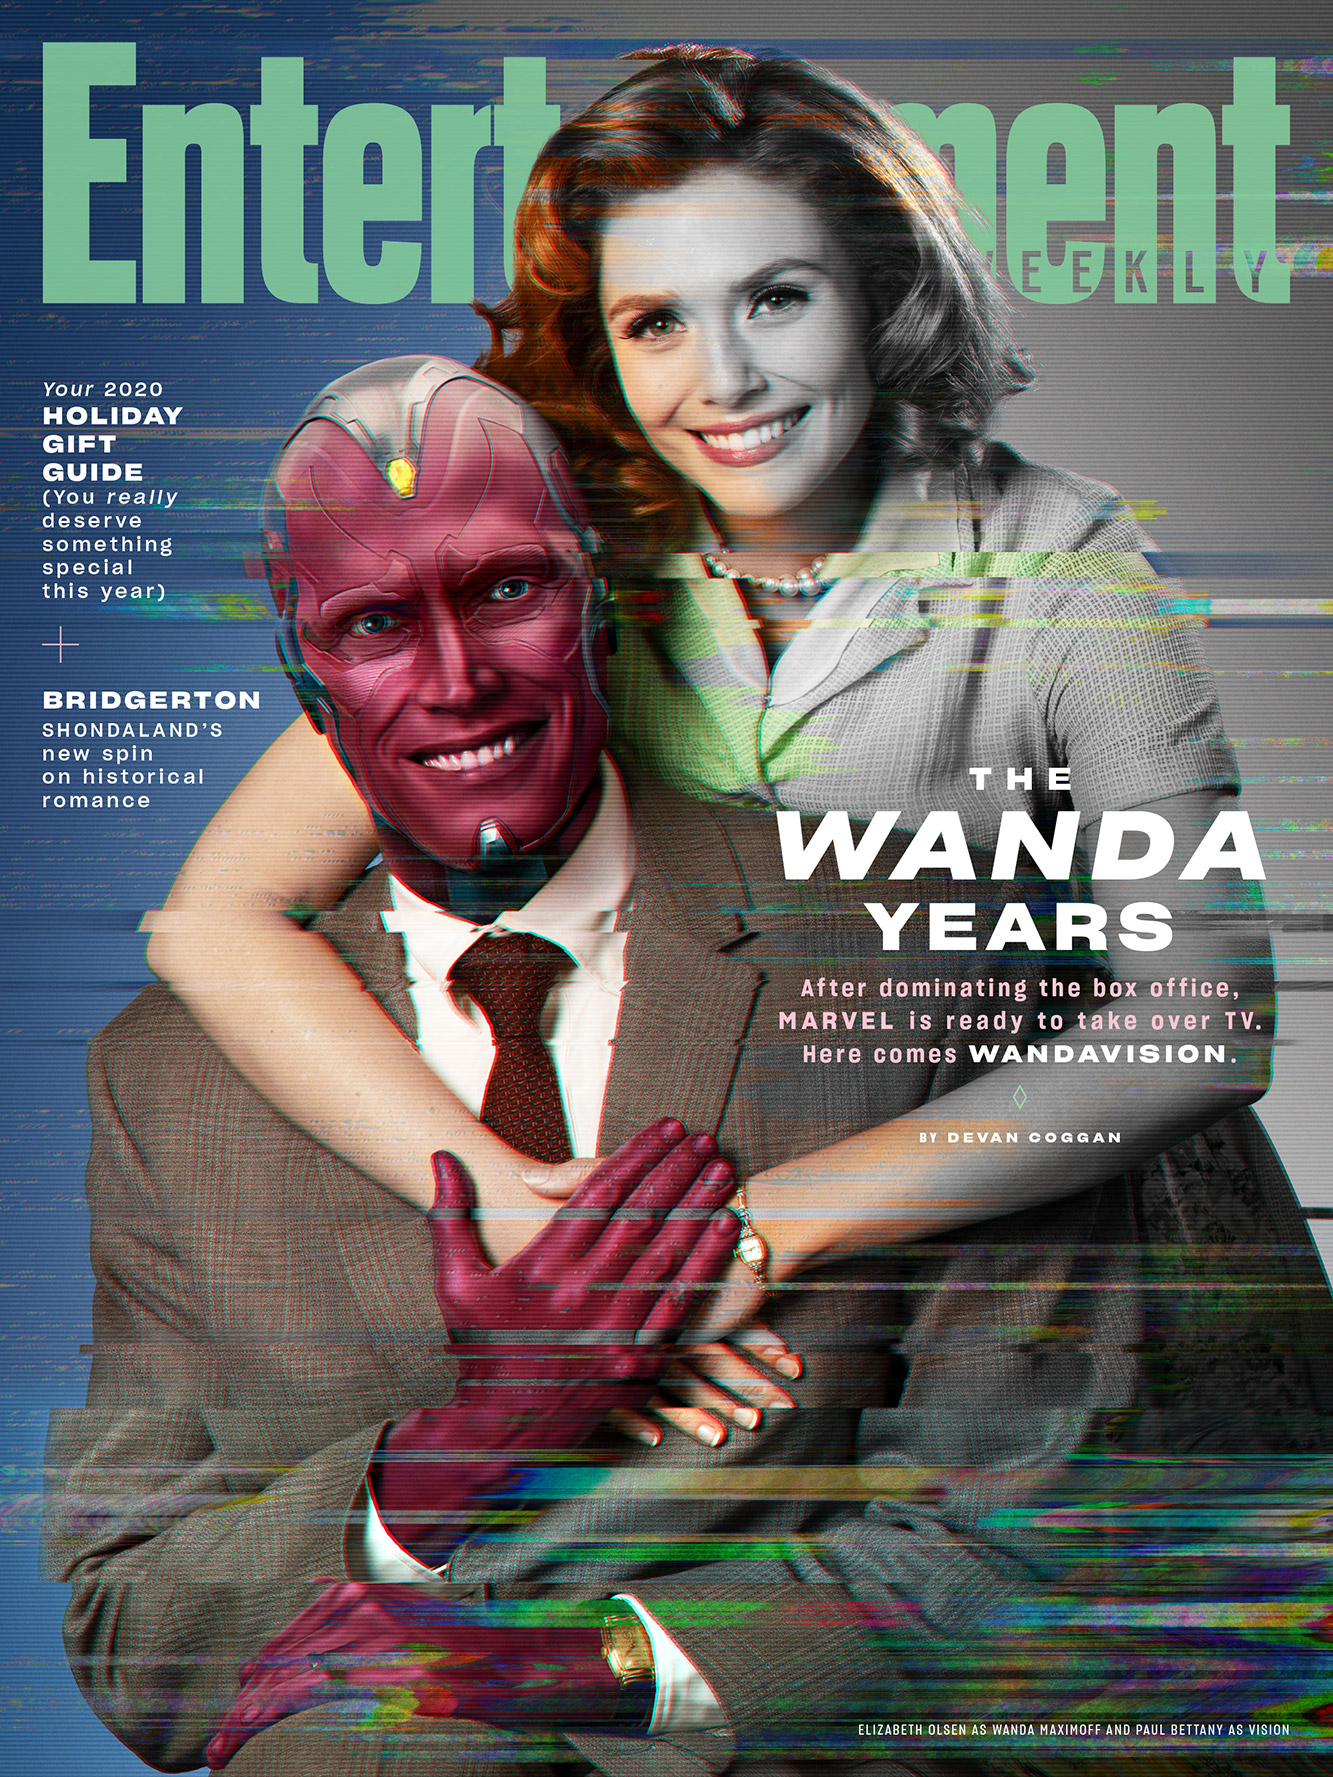 Entertainment Weekly's cover of WandaVisio